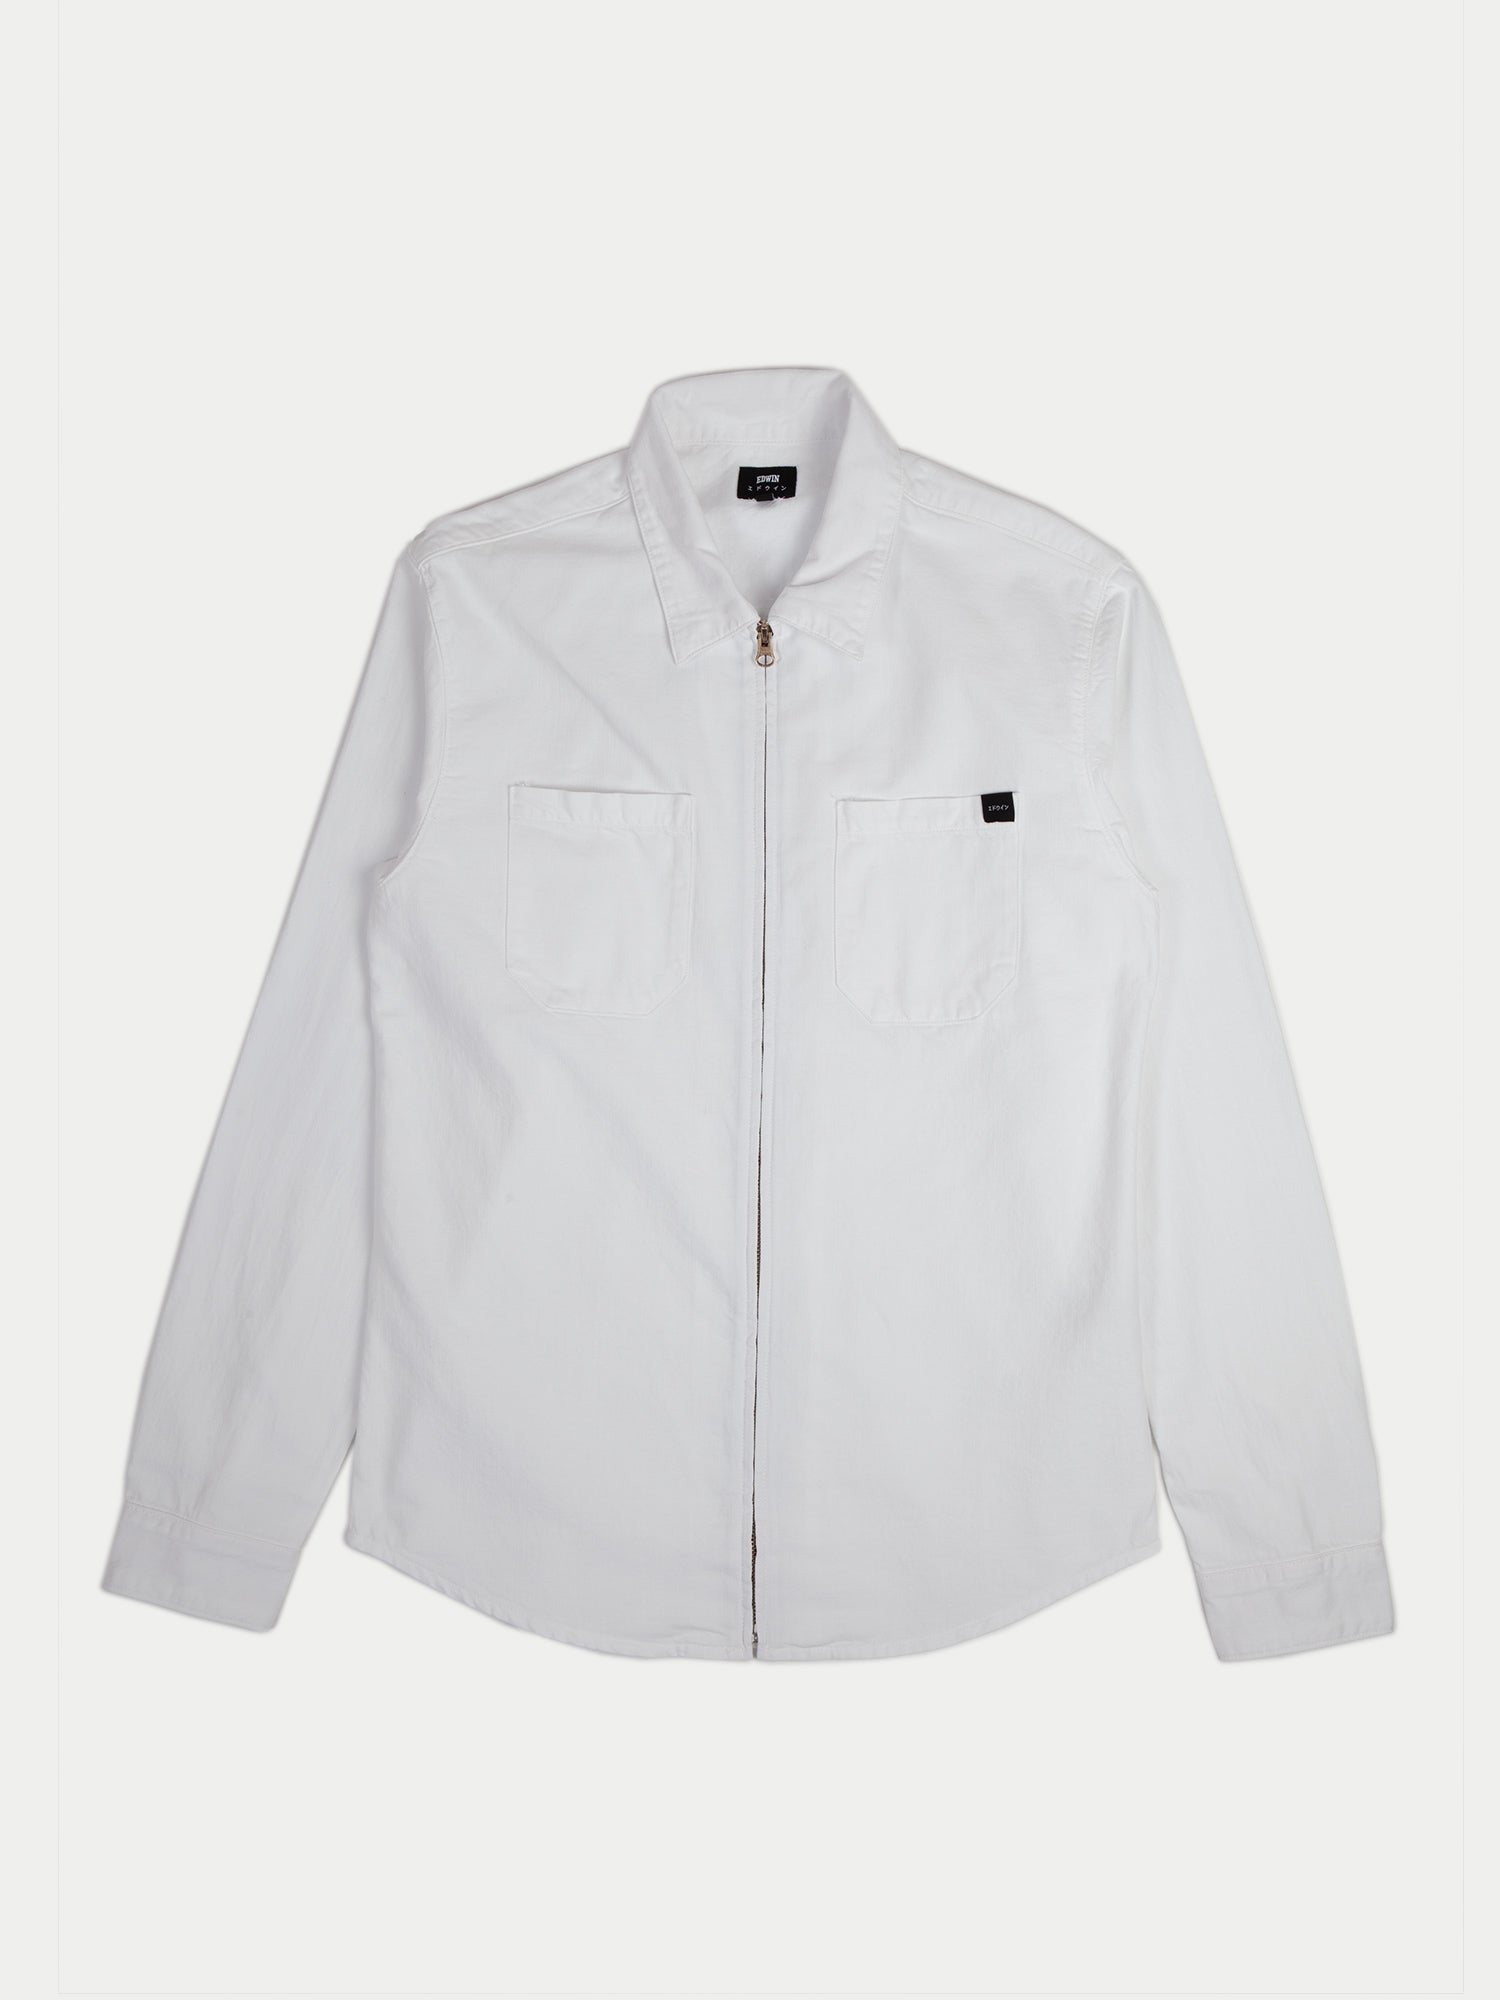 Edwin Demo Zip Overshirt (White Garment Dyed)